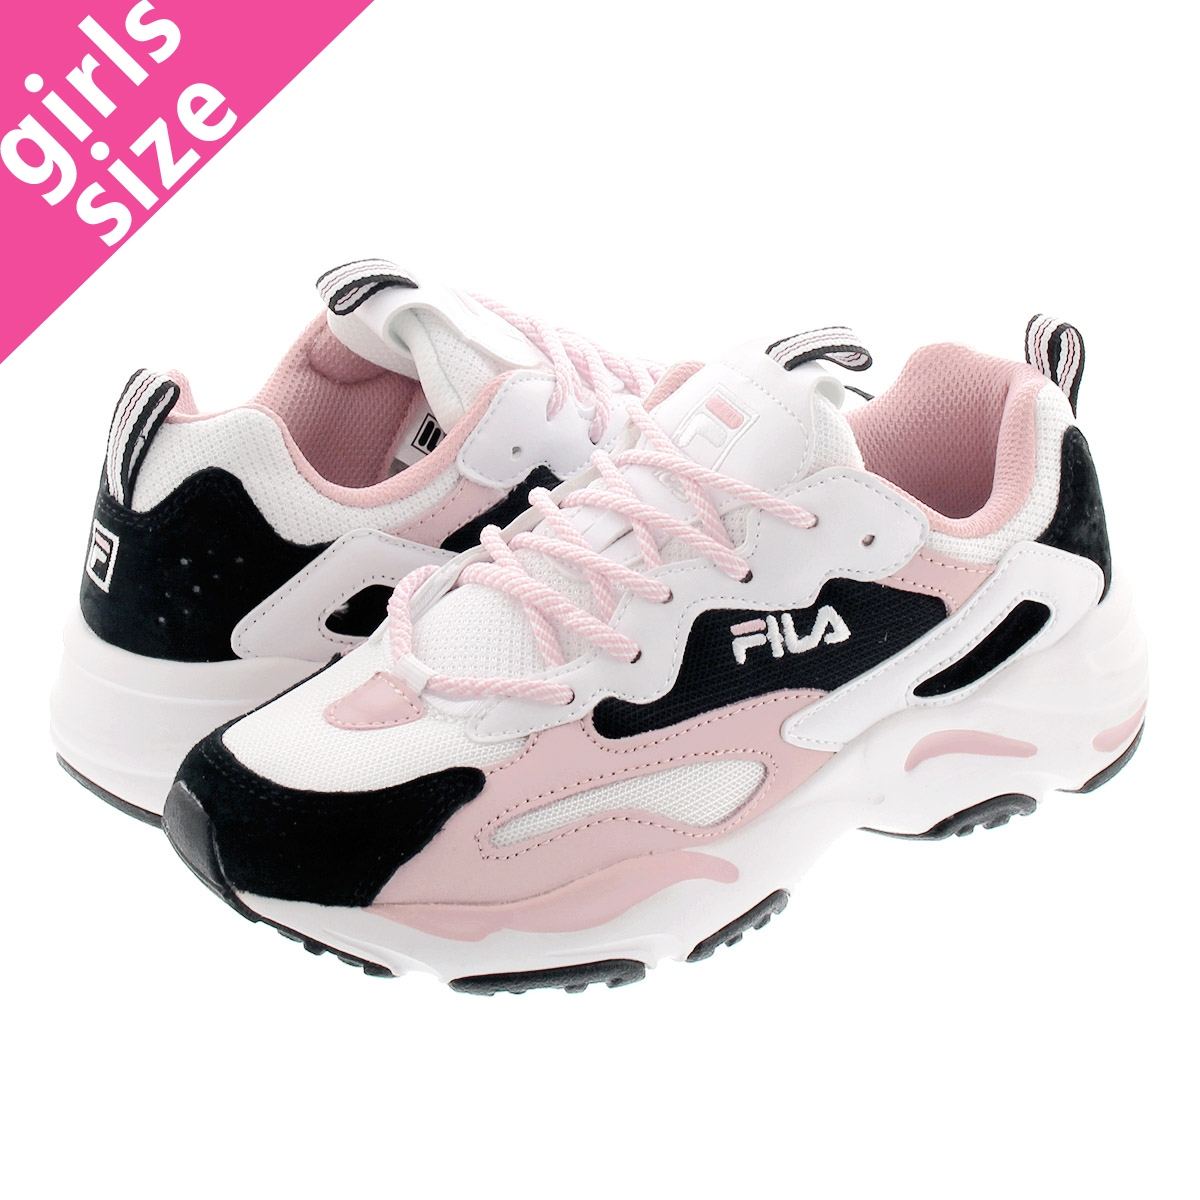 FILA RAY TRACER WMNS Fila rate racer women WHITEBLACKLIGHT PINK f5105 0119